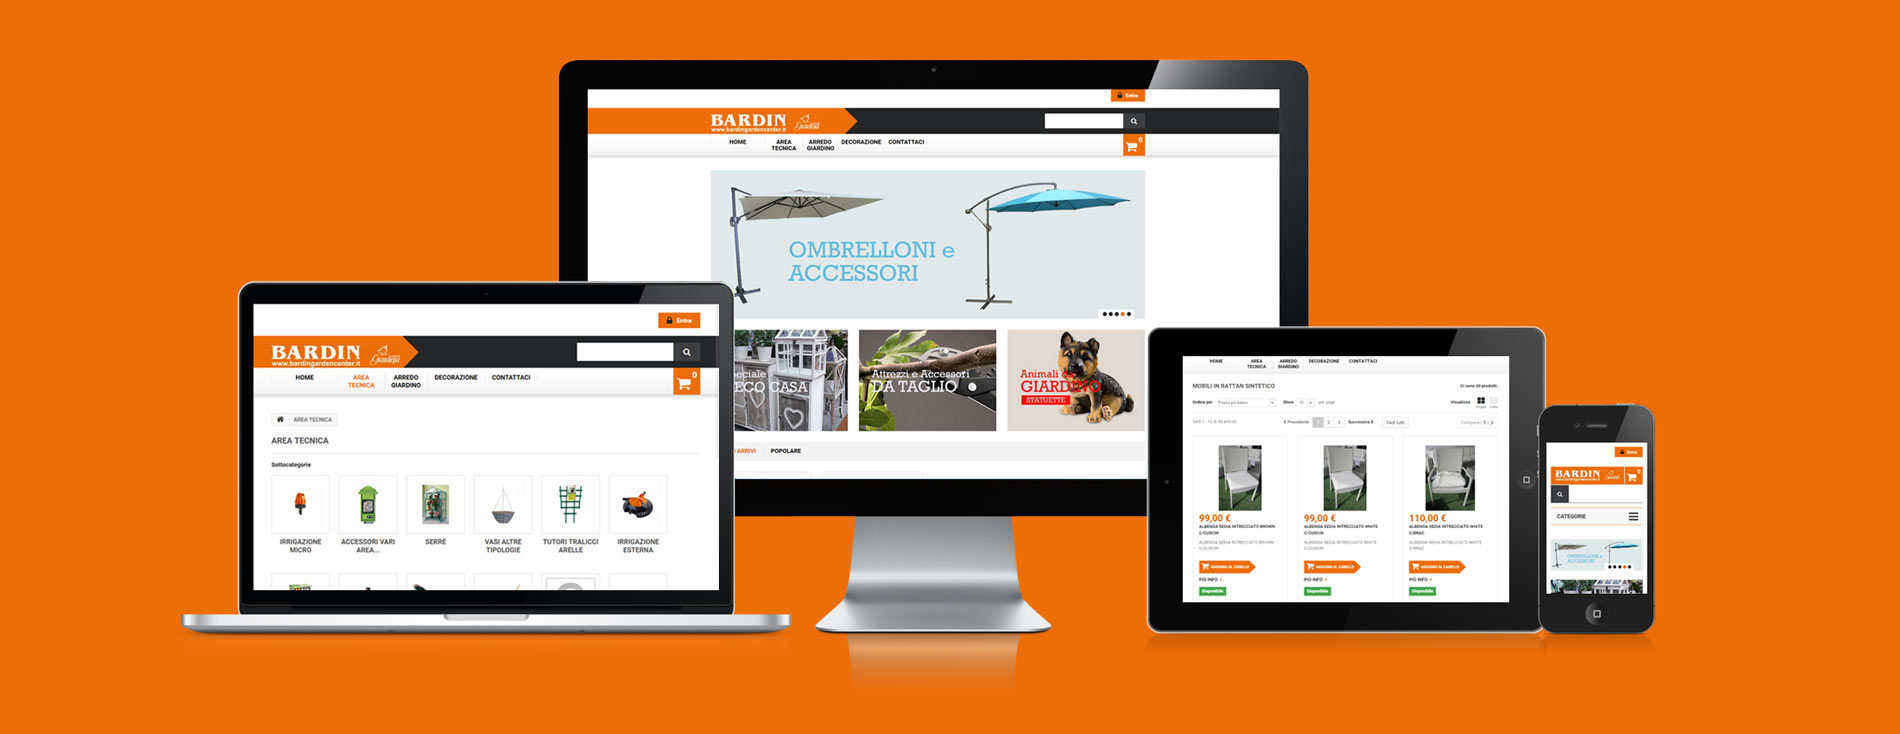 Bardin Shop Websolution Web Agency Treviso